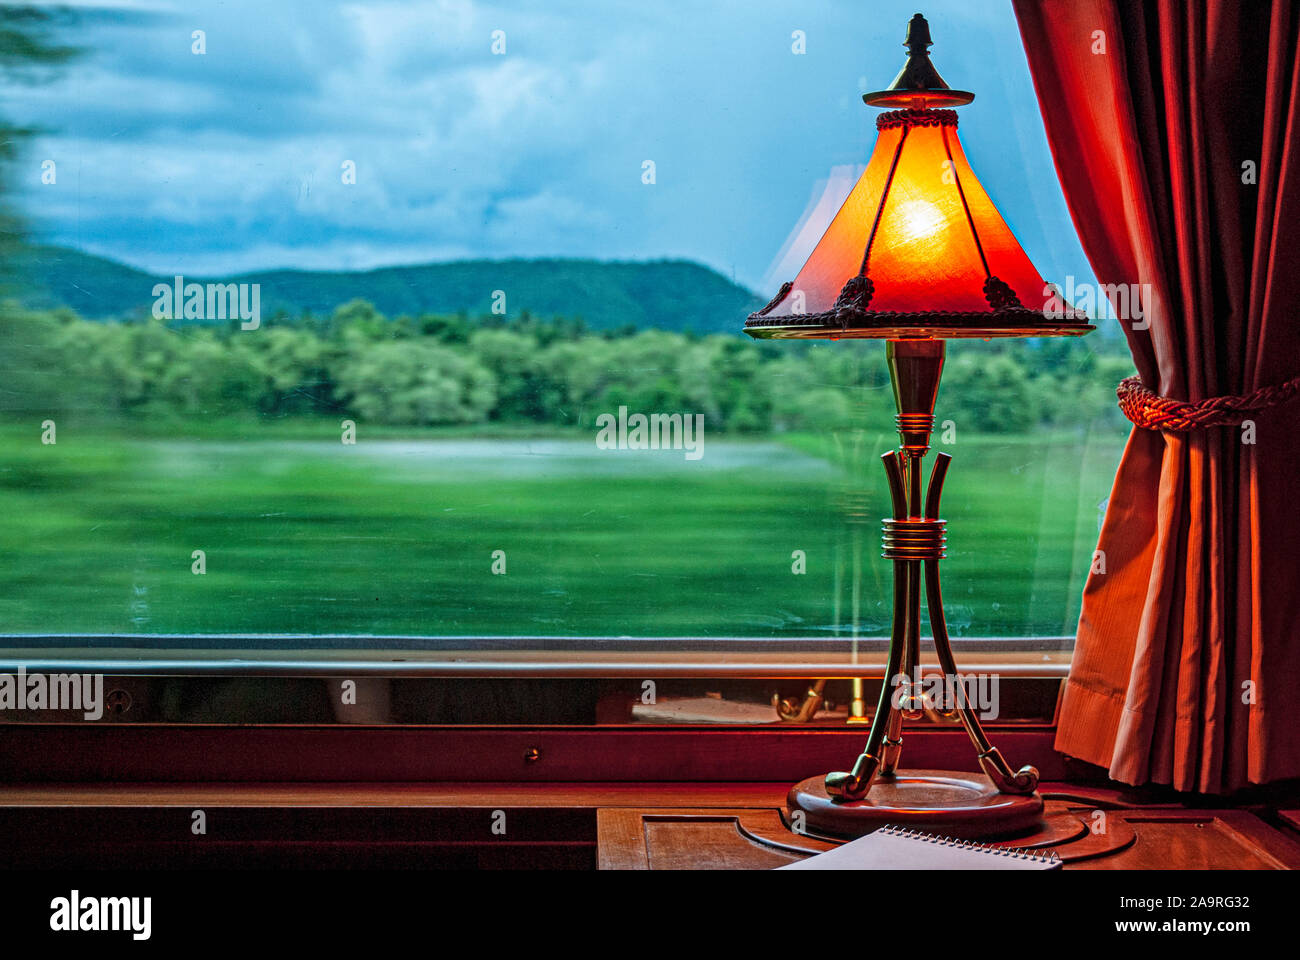 interior-of-an-orient-express-train-in-southeast-asia-2A9RG32.jpg